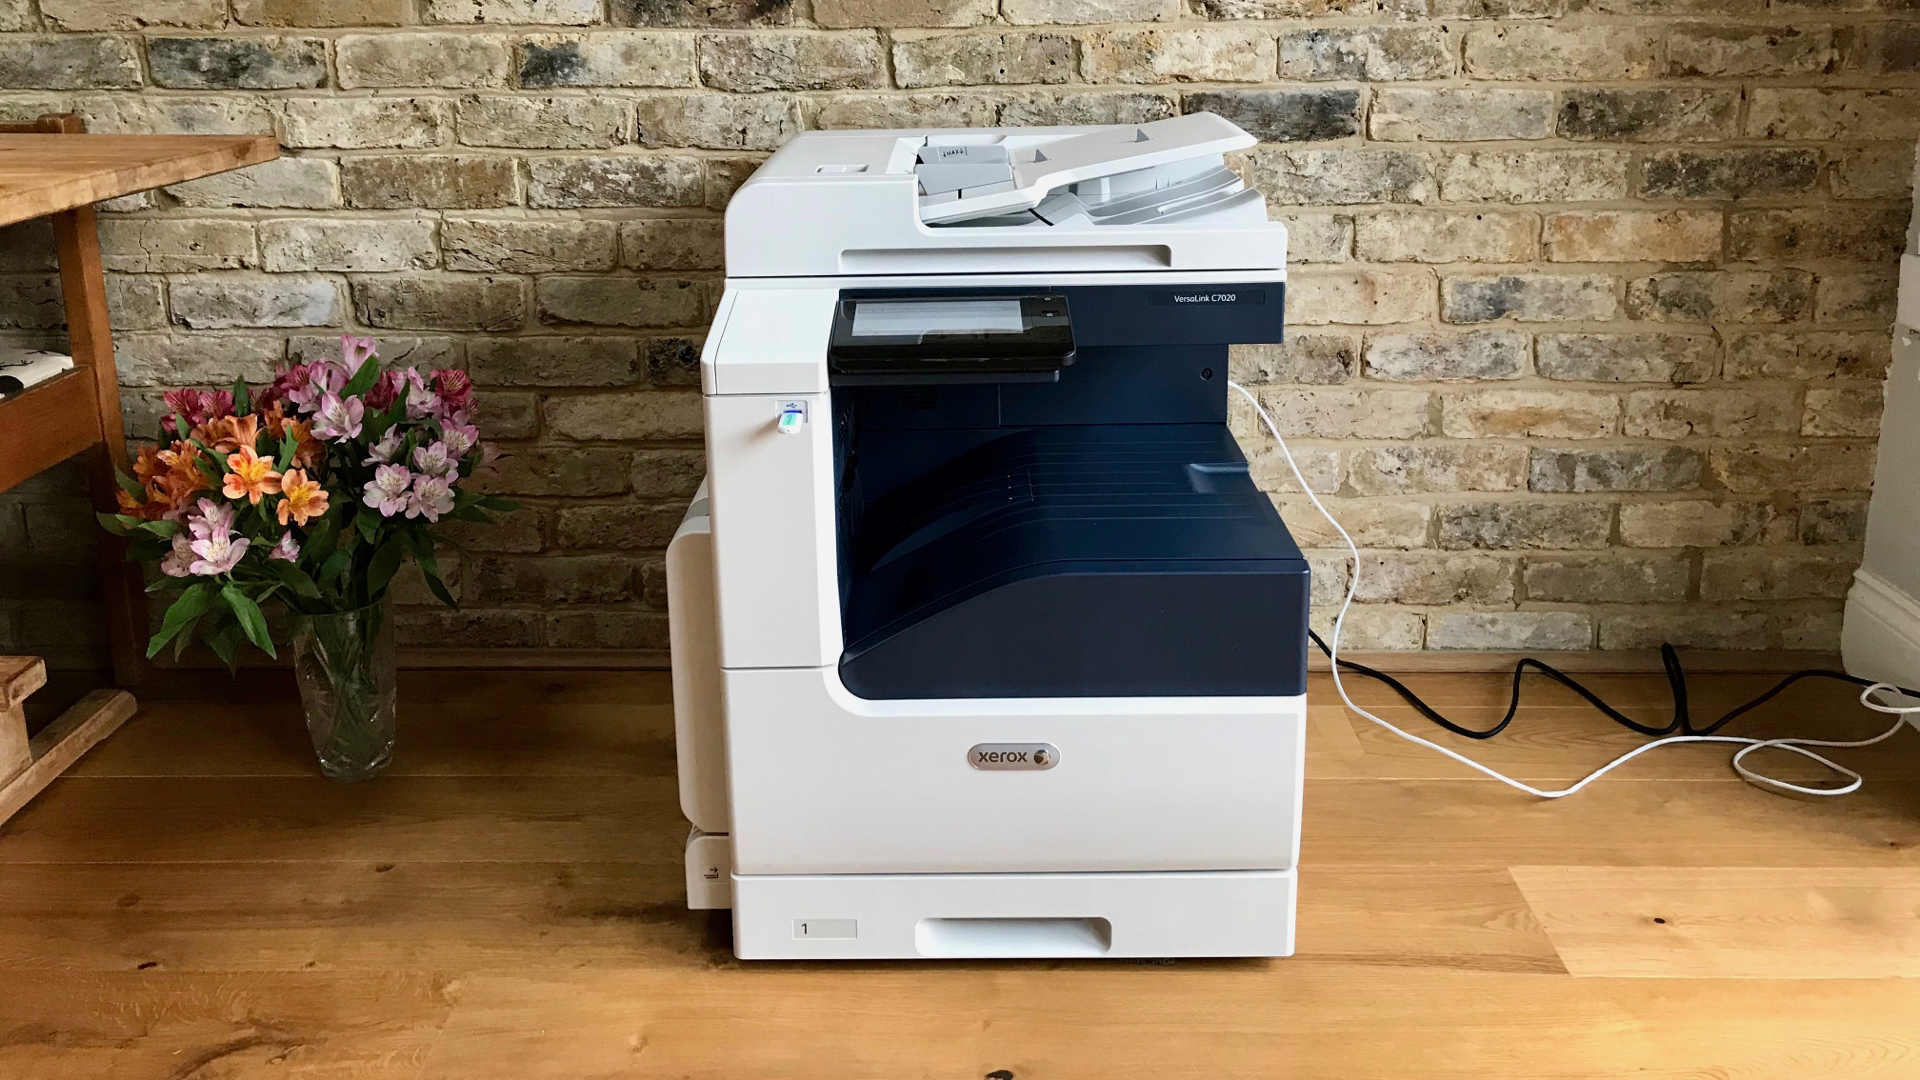 Xerox VersaLink C7020 review | TechRadar